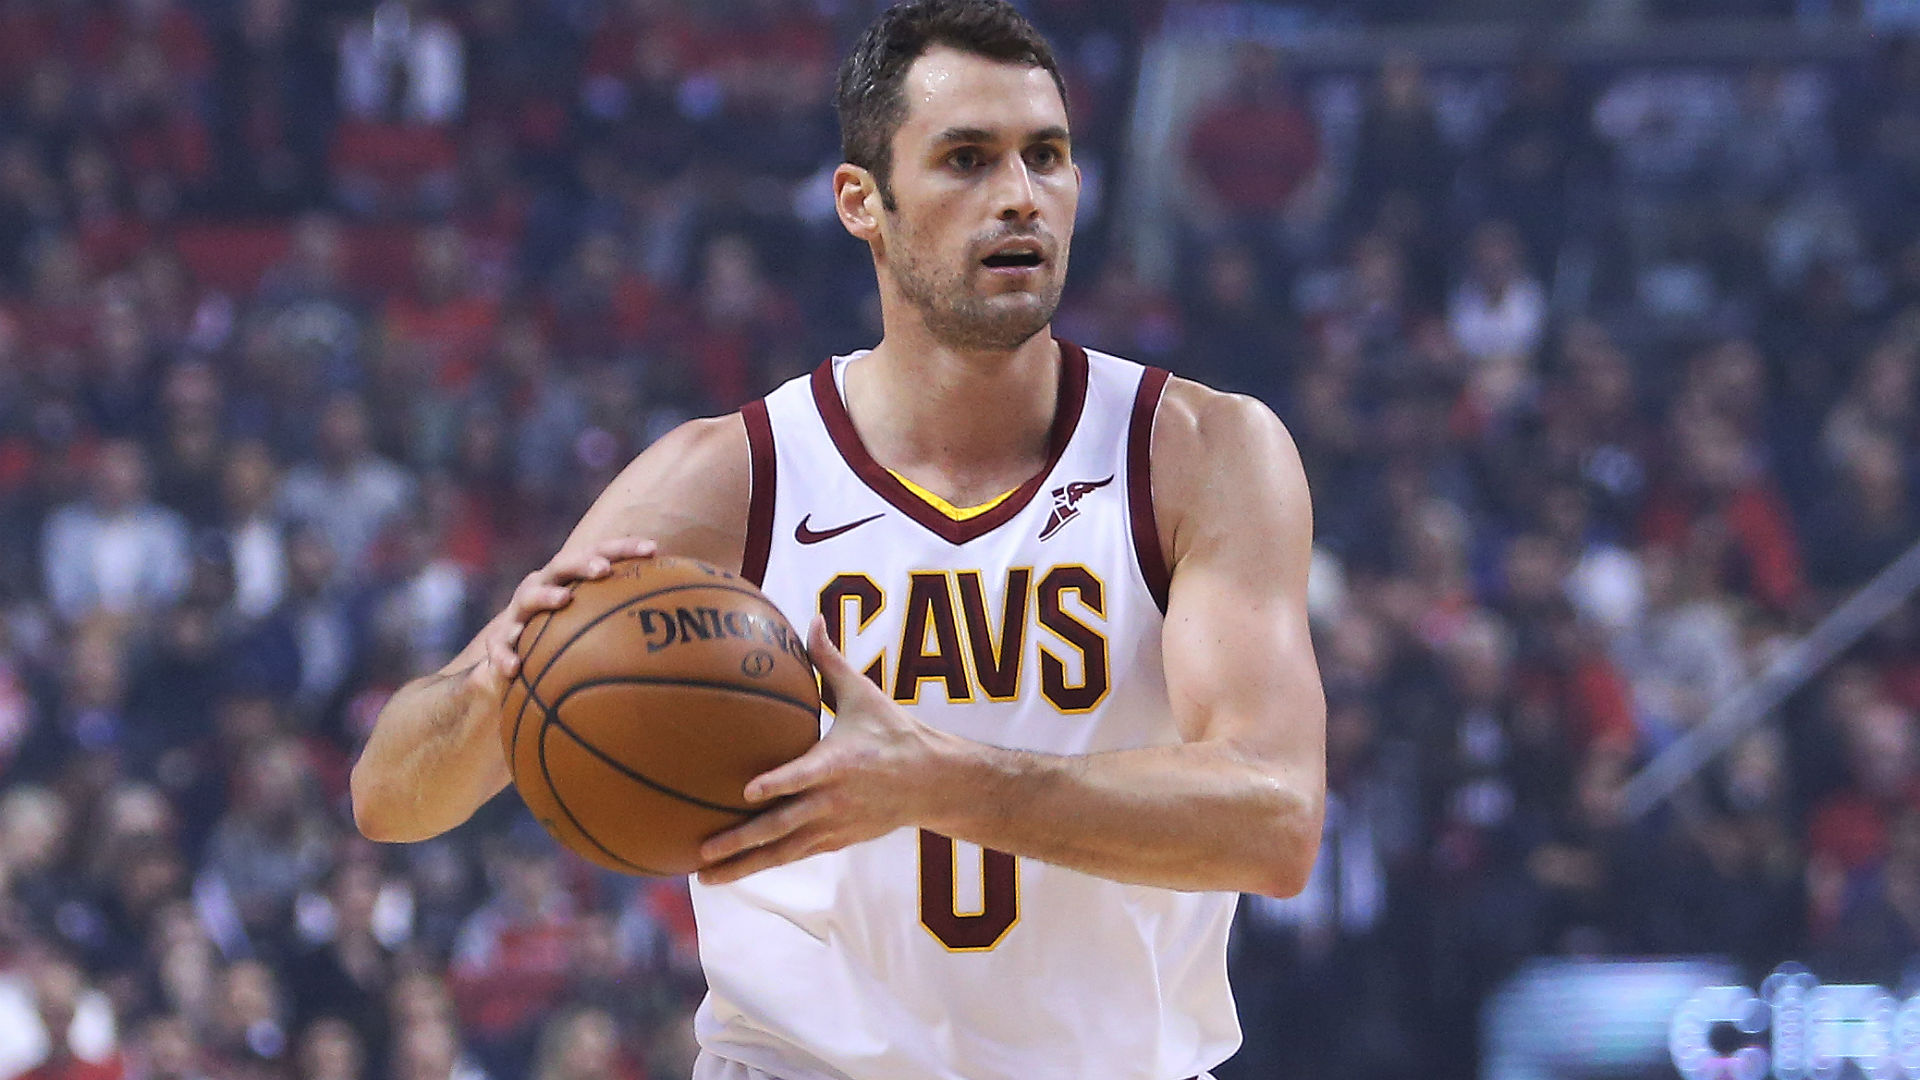 Cavaliers coach Larry Drew discusses trade rumors surrounding Kevin Love